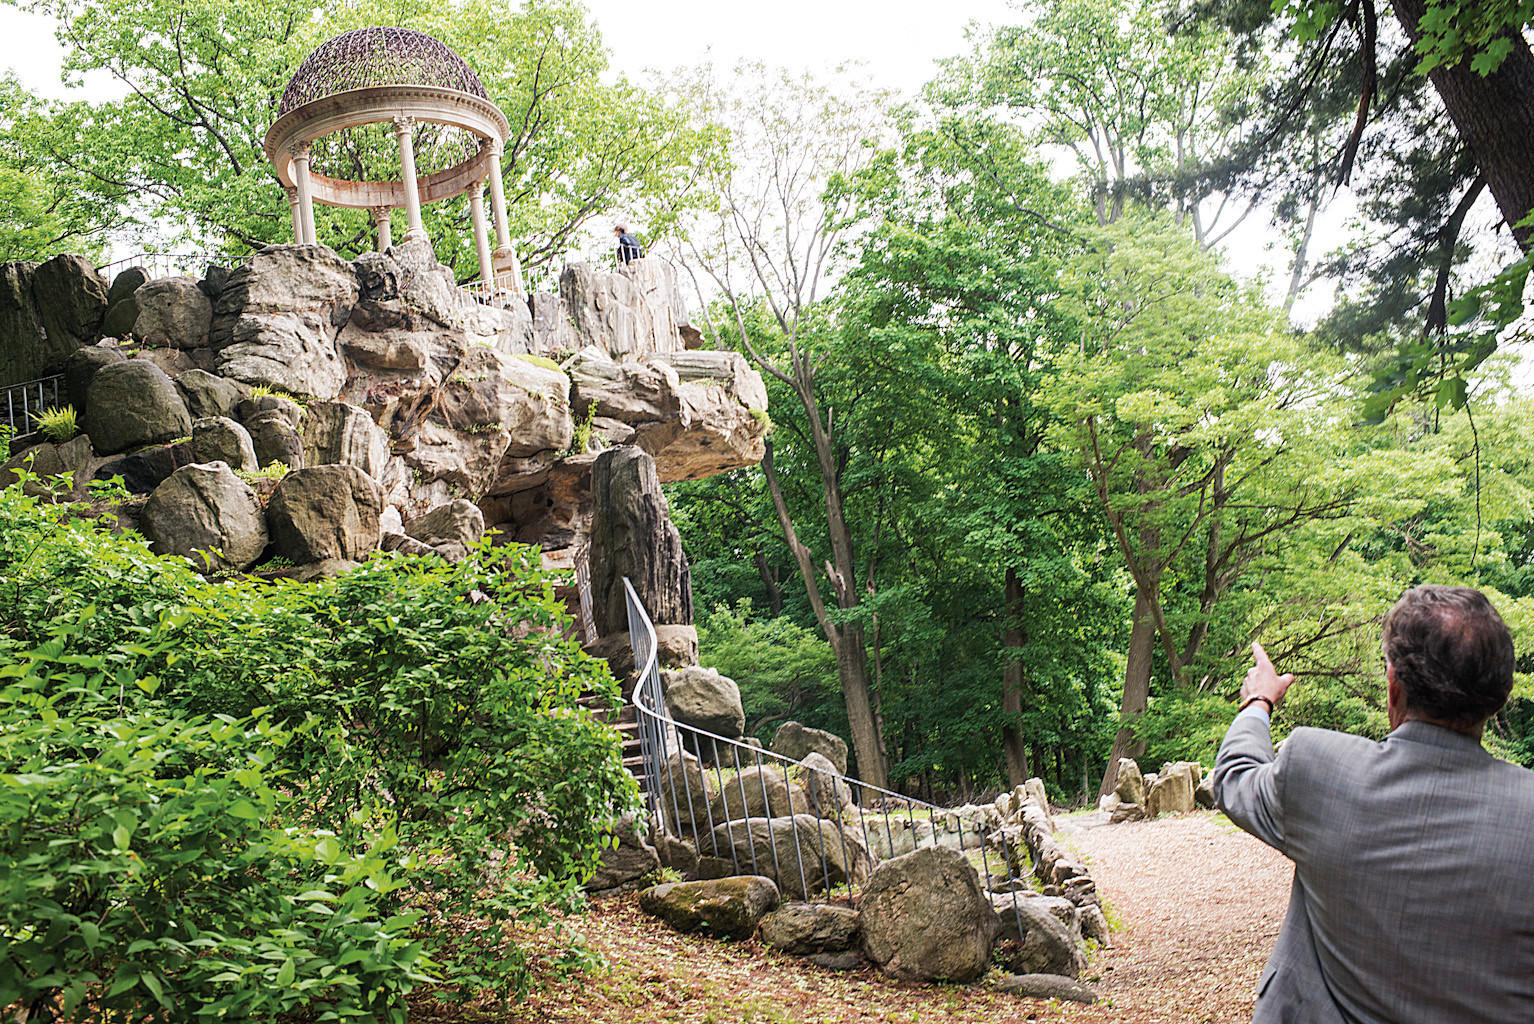 Volunteer chairman of the Untermyer Gardens Conservancy Stephen Byrns gives a tour of the 'Temple of Love,' which the conservancy hopes to restore over the next one or two years.